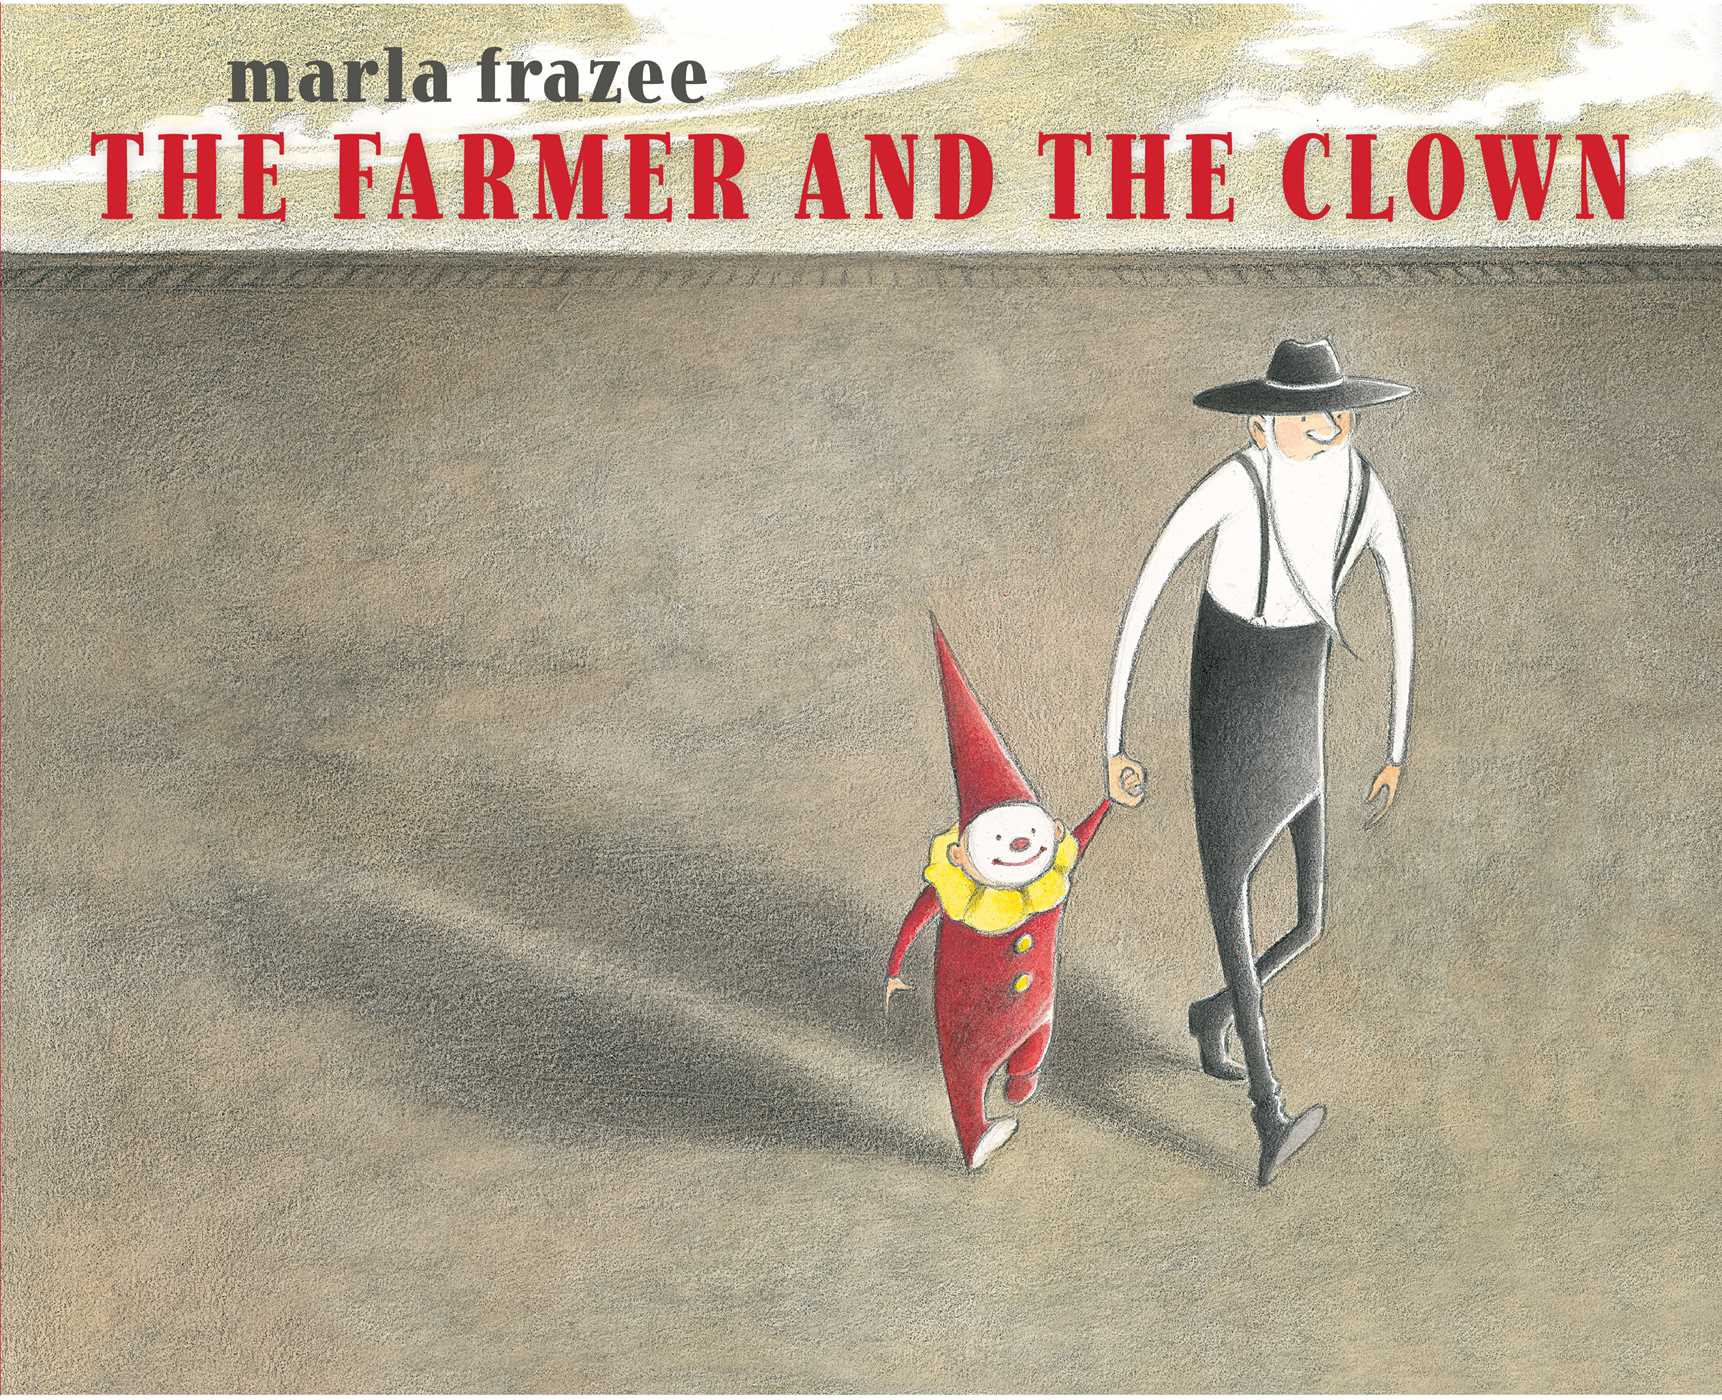 Farmer-and-the-clown-9781442497450_hr